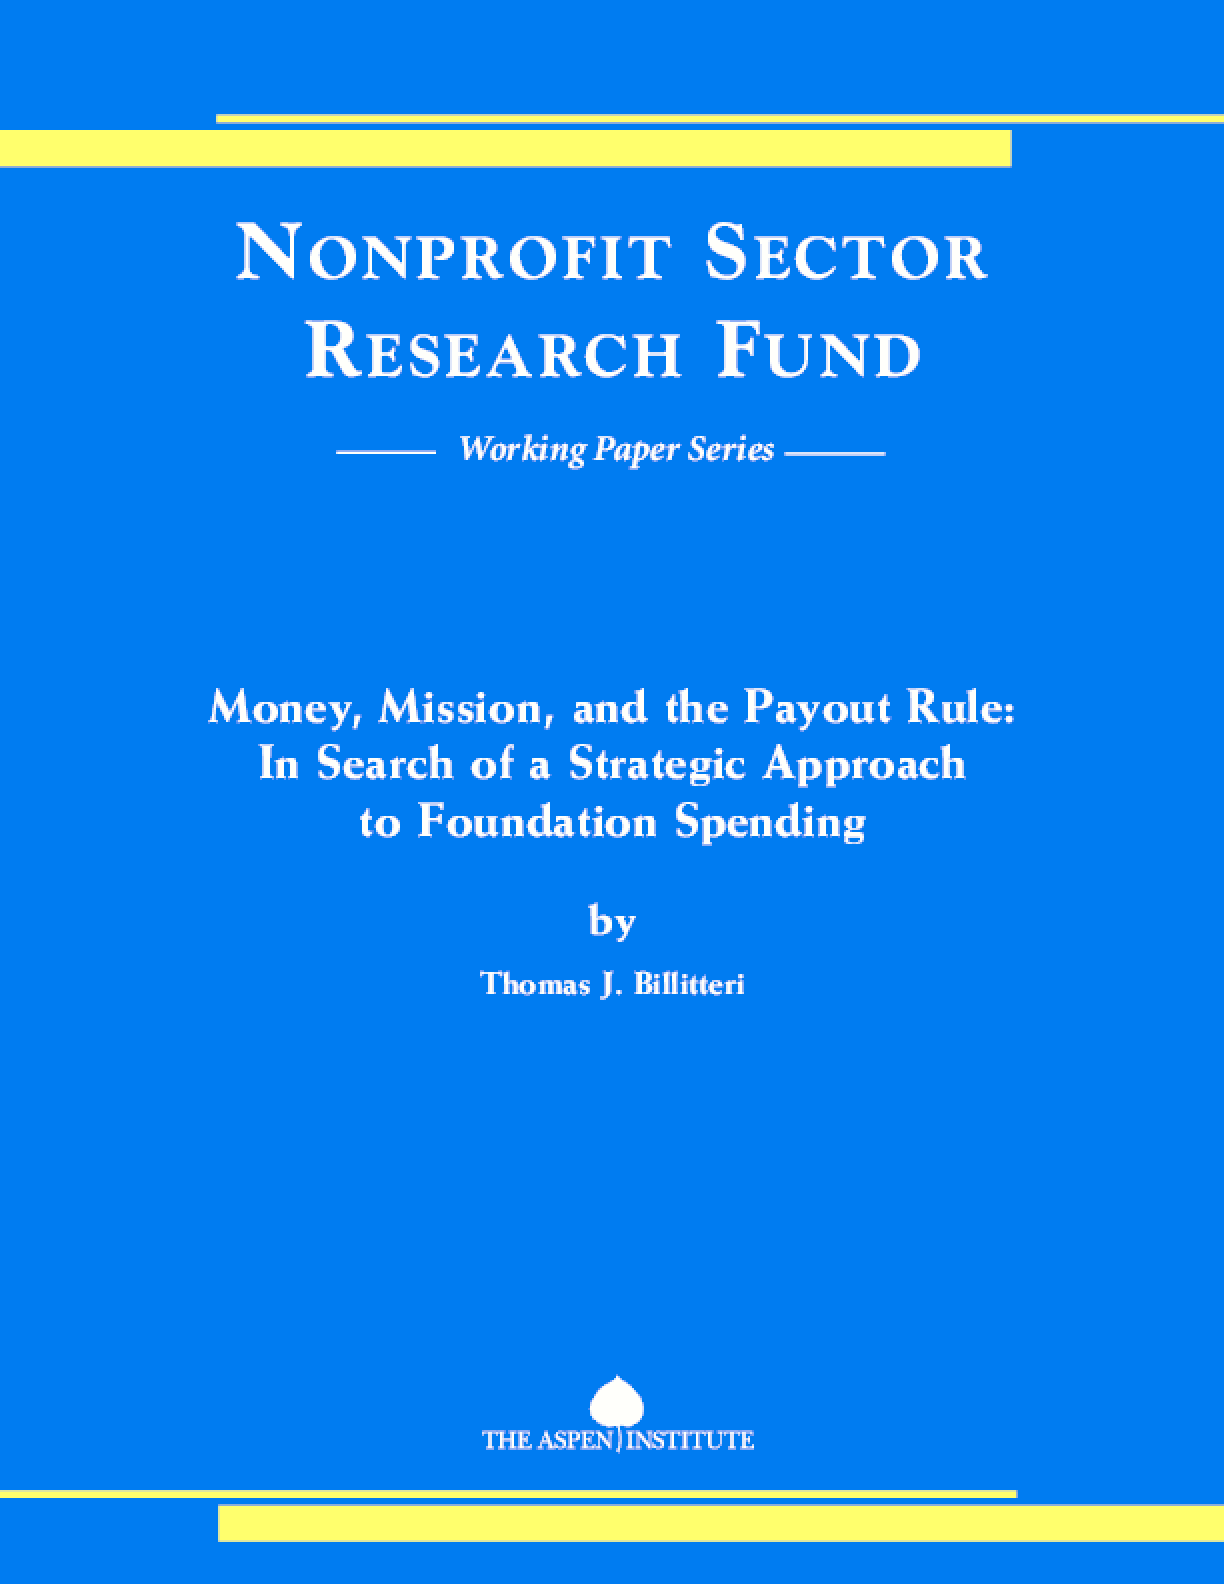 Money, Mission, and the Payout Rule: In Search of a Strategic Approach to Foundation Spending